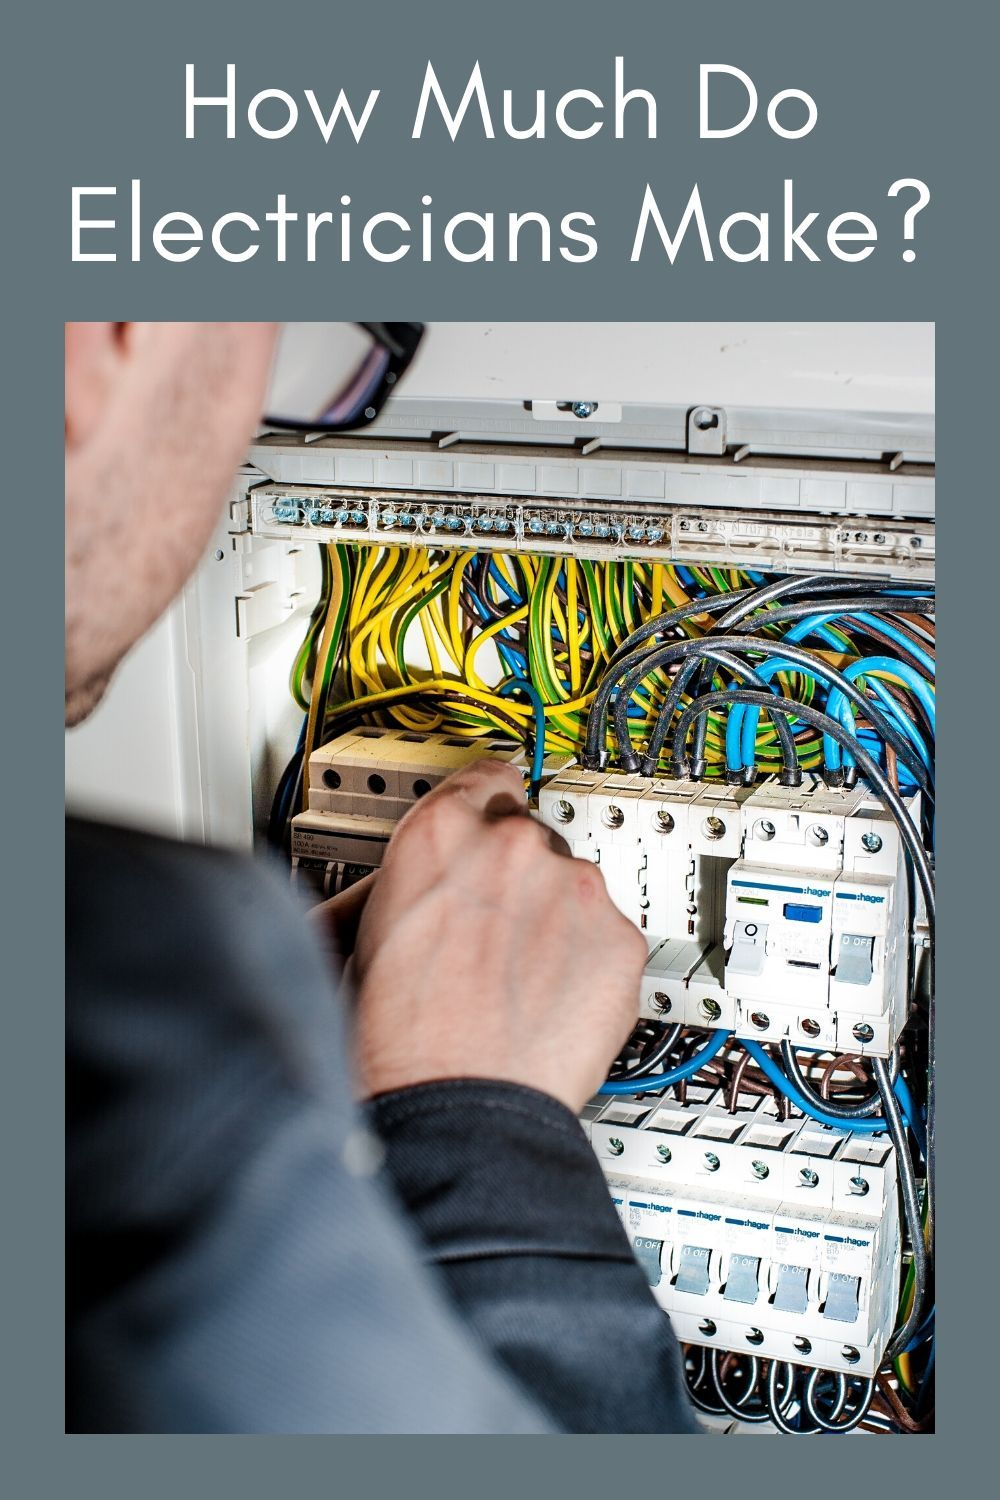 An electrician is a tradesperson. They gain their